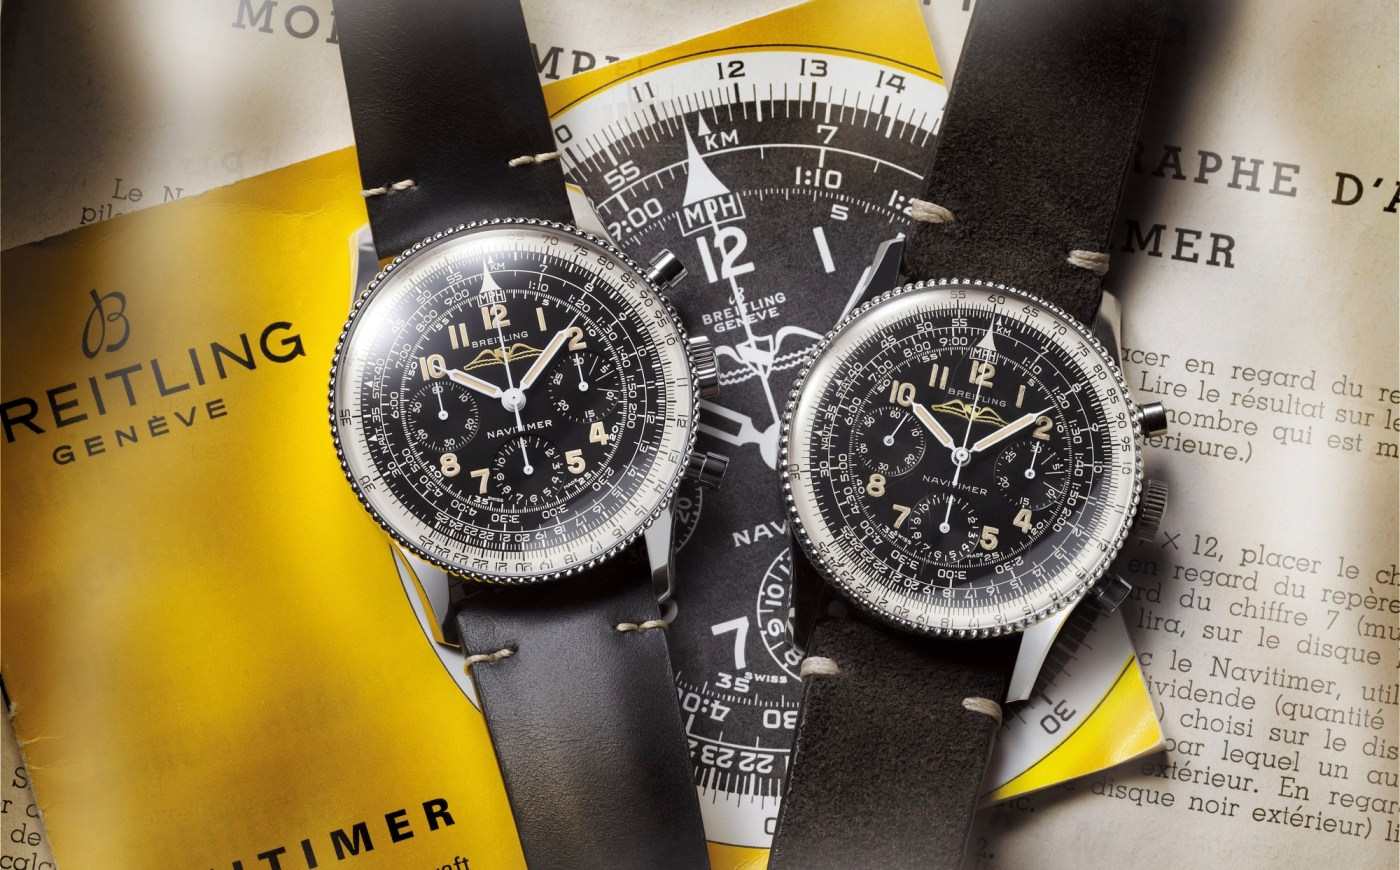 Navitimer Ref. 806 1959 Re-Edition (left) and vintage model (right)